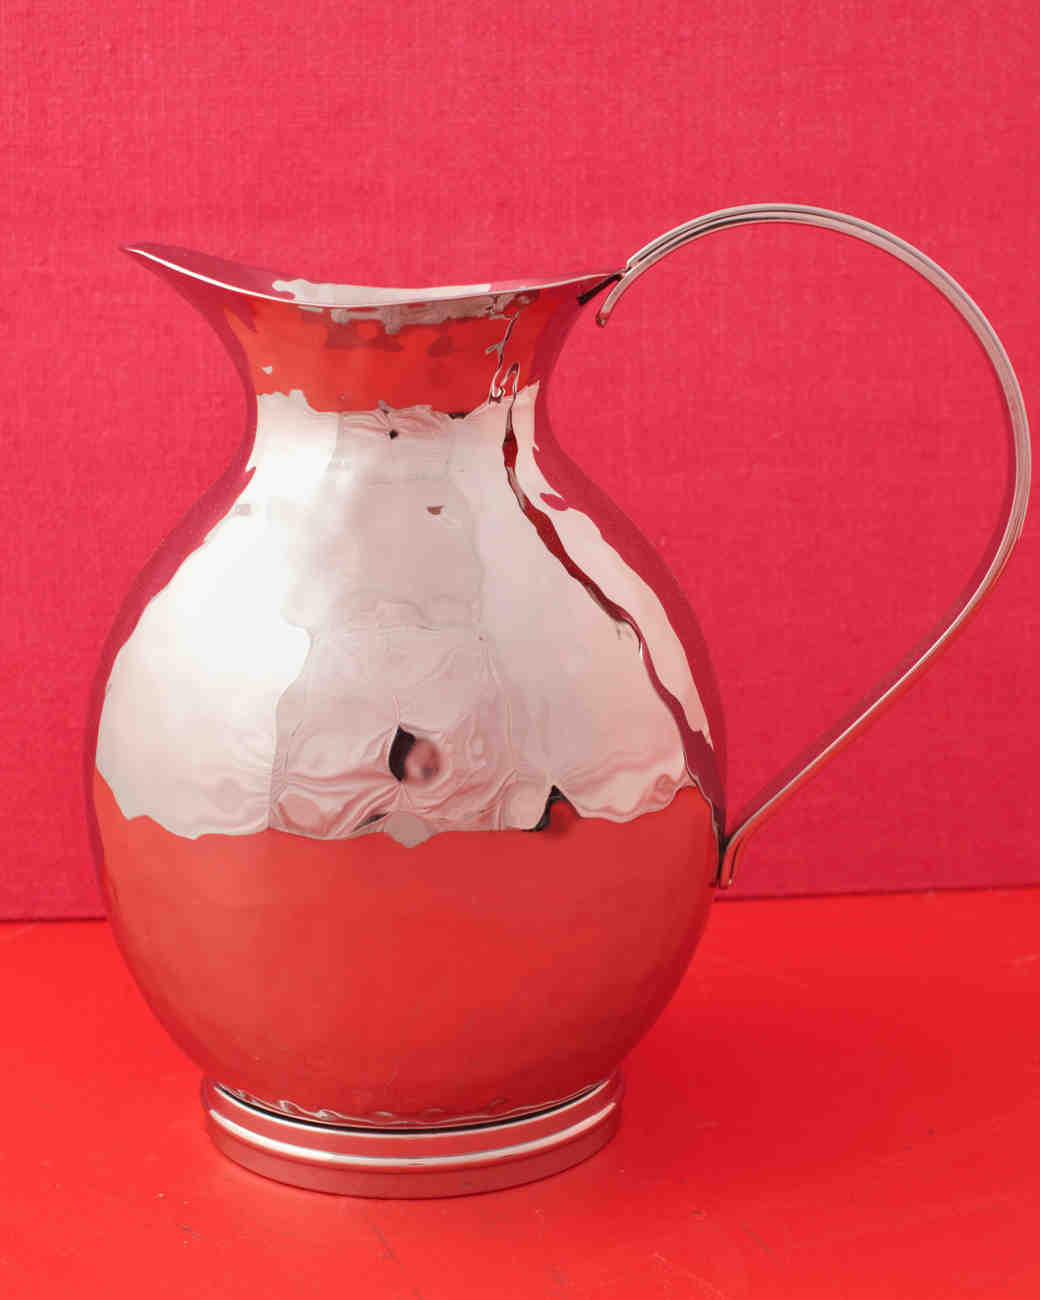 water-pitcher-wd107851.jpg